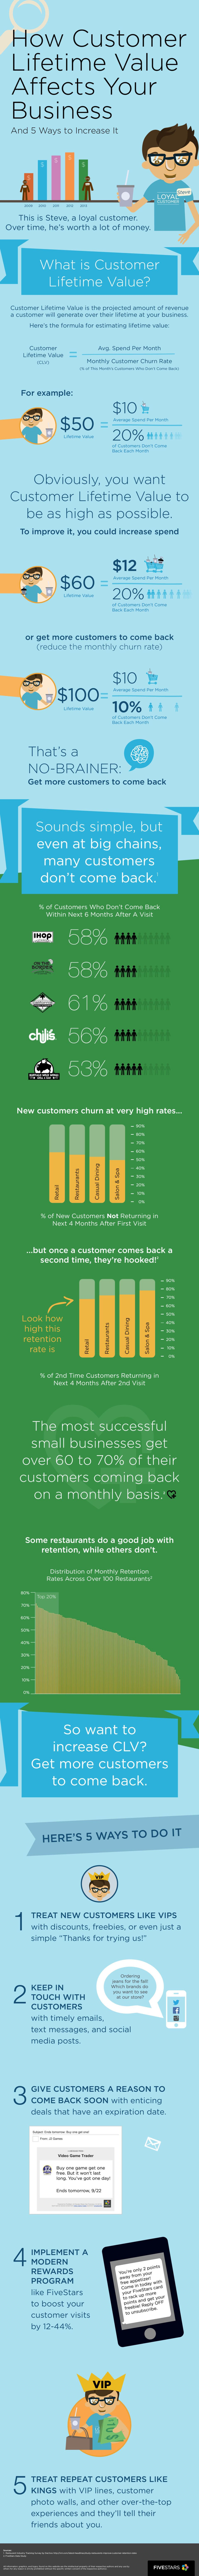 How Customer Lifetime Value Affects Your Business, and 5 Ways to Increase It